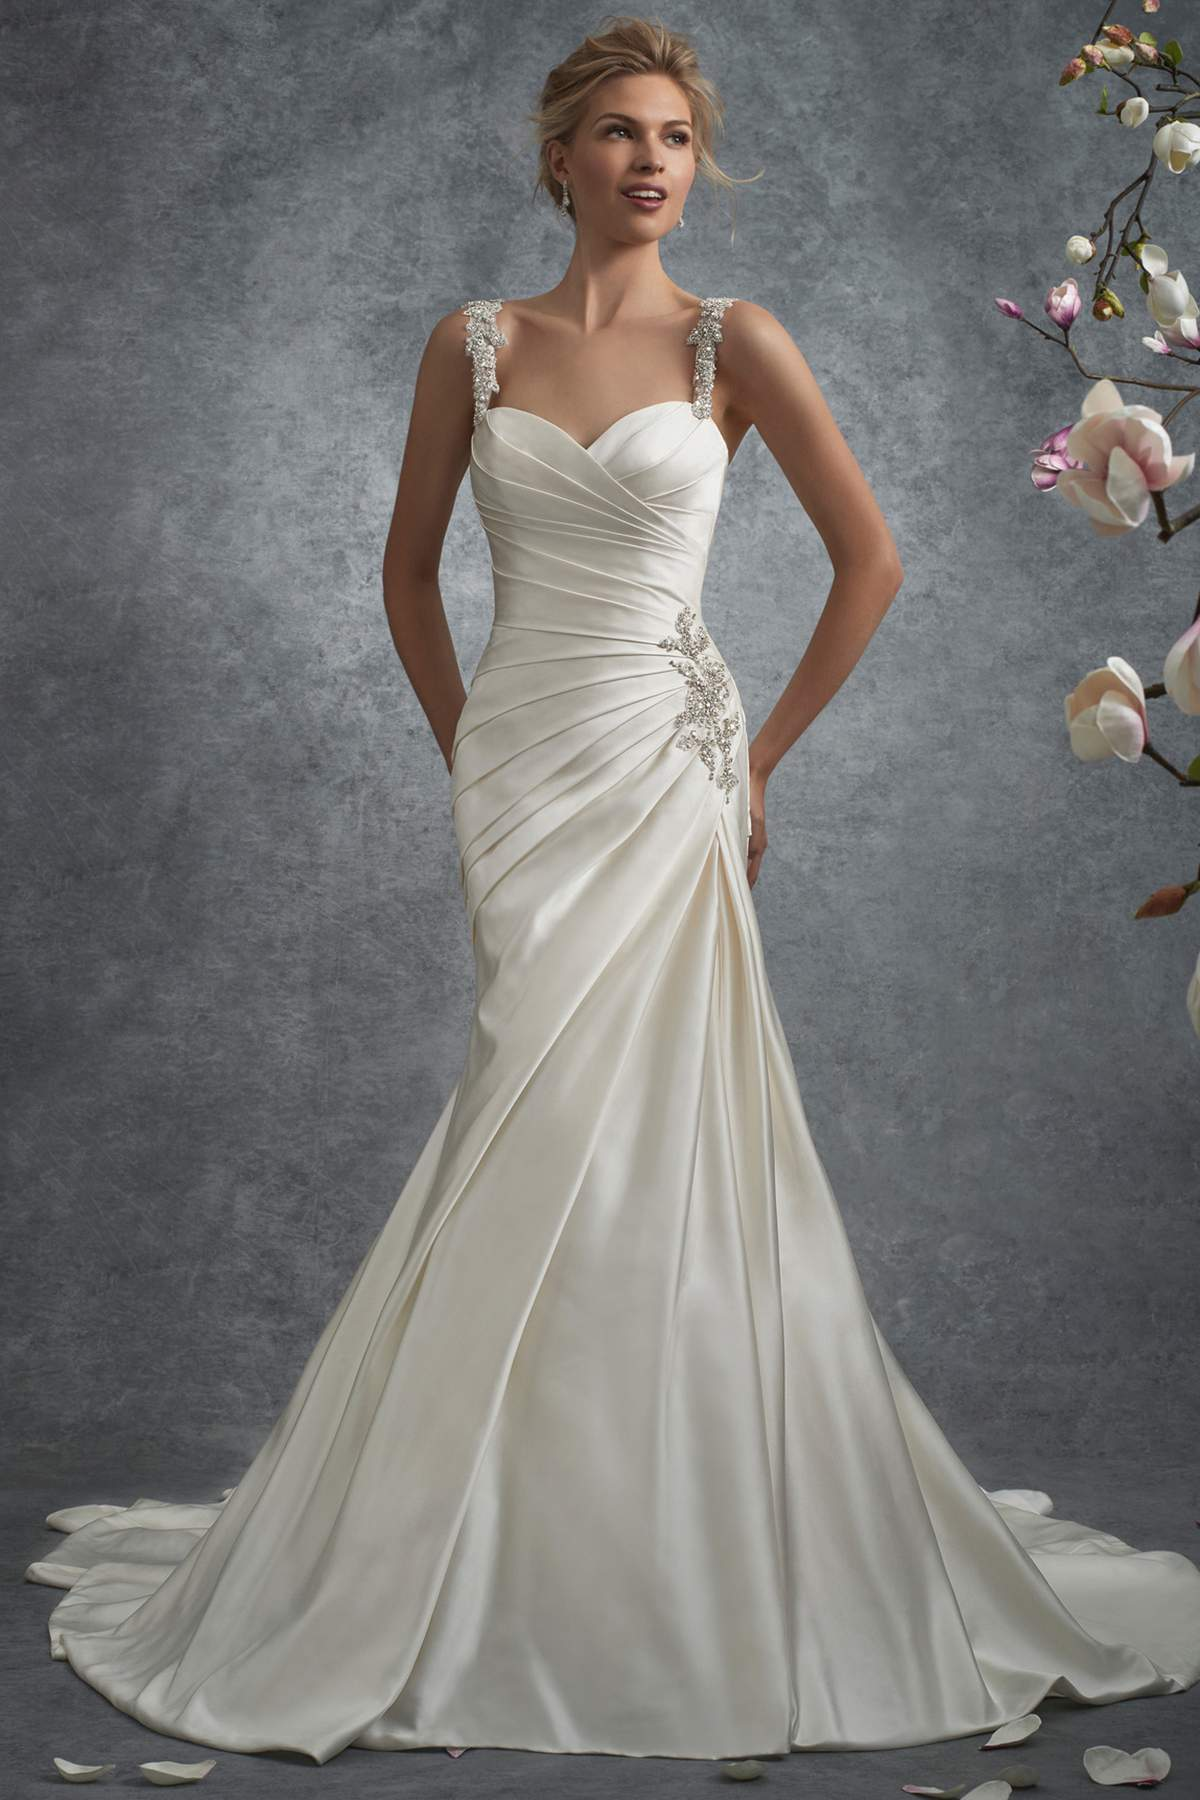 7a022ac87636 Style Y21737 Saturn by Sophia Tolli - Find Your Dream Dress